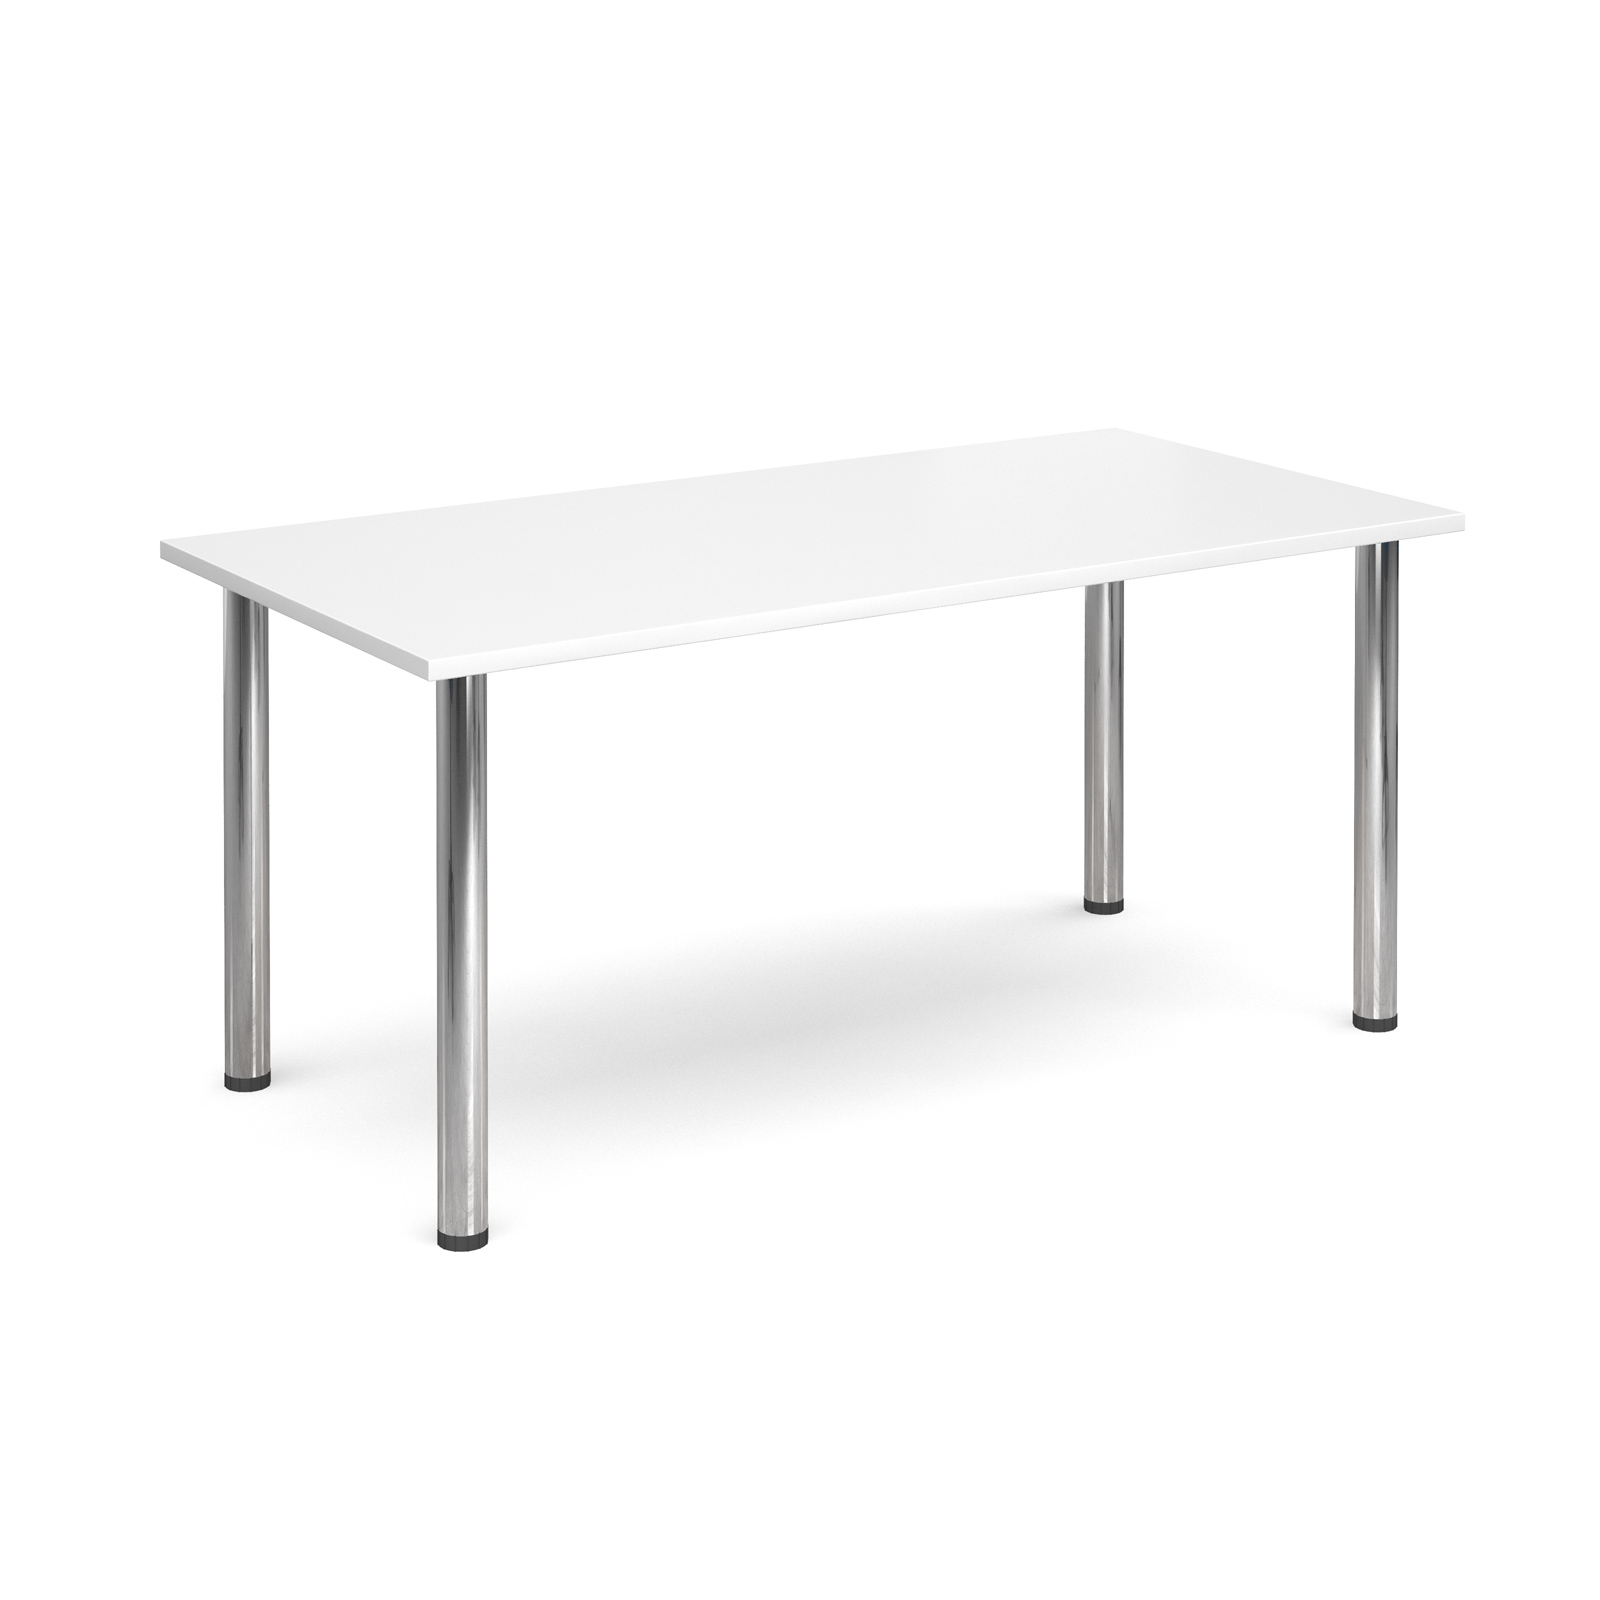 Rectangular deluxe chrome radial leg table 1600mm x 800mm - white